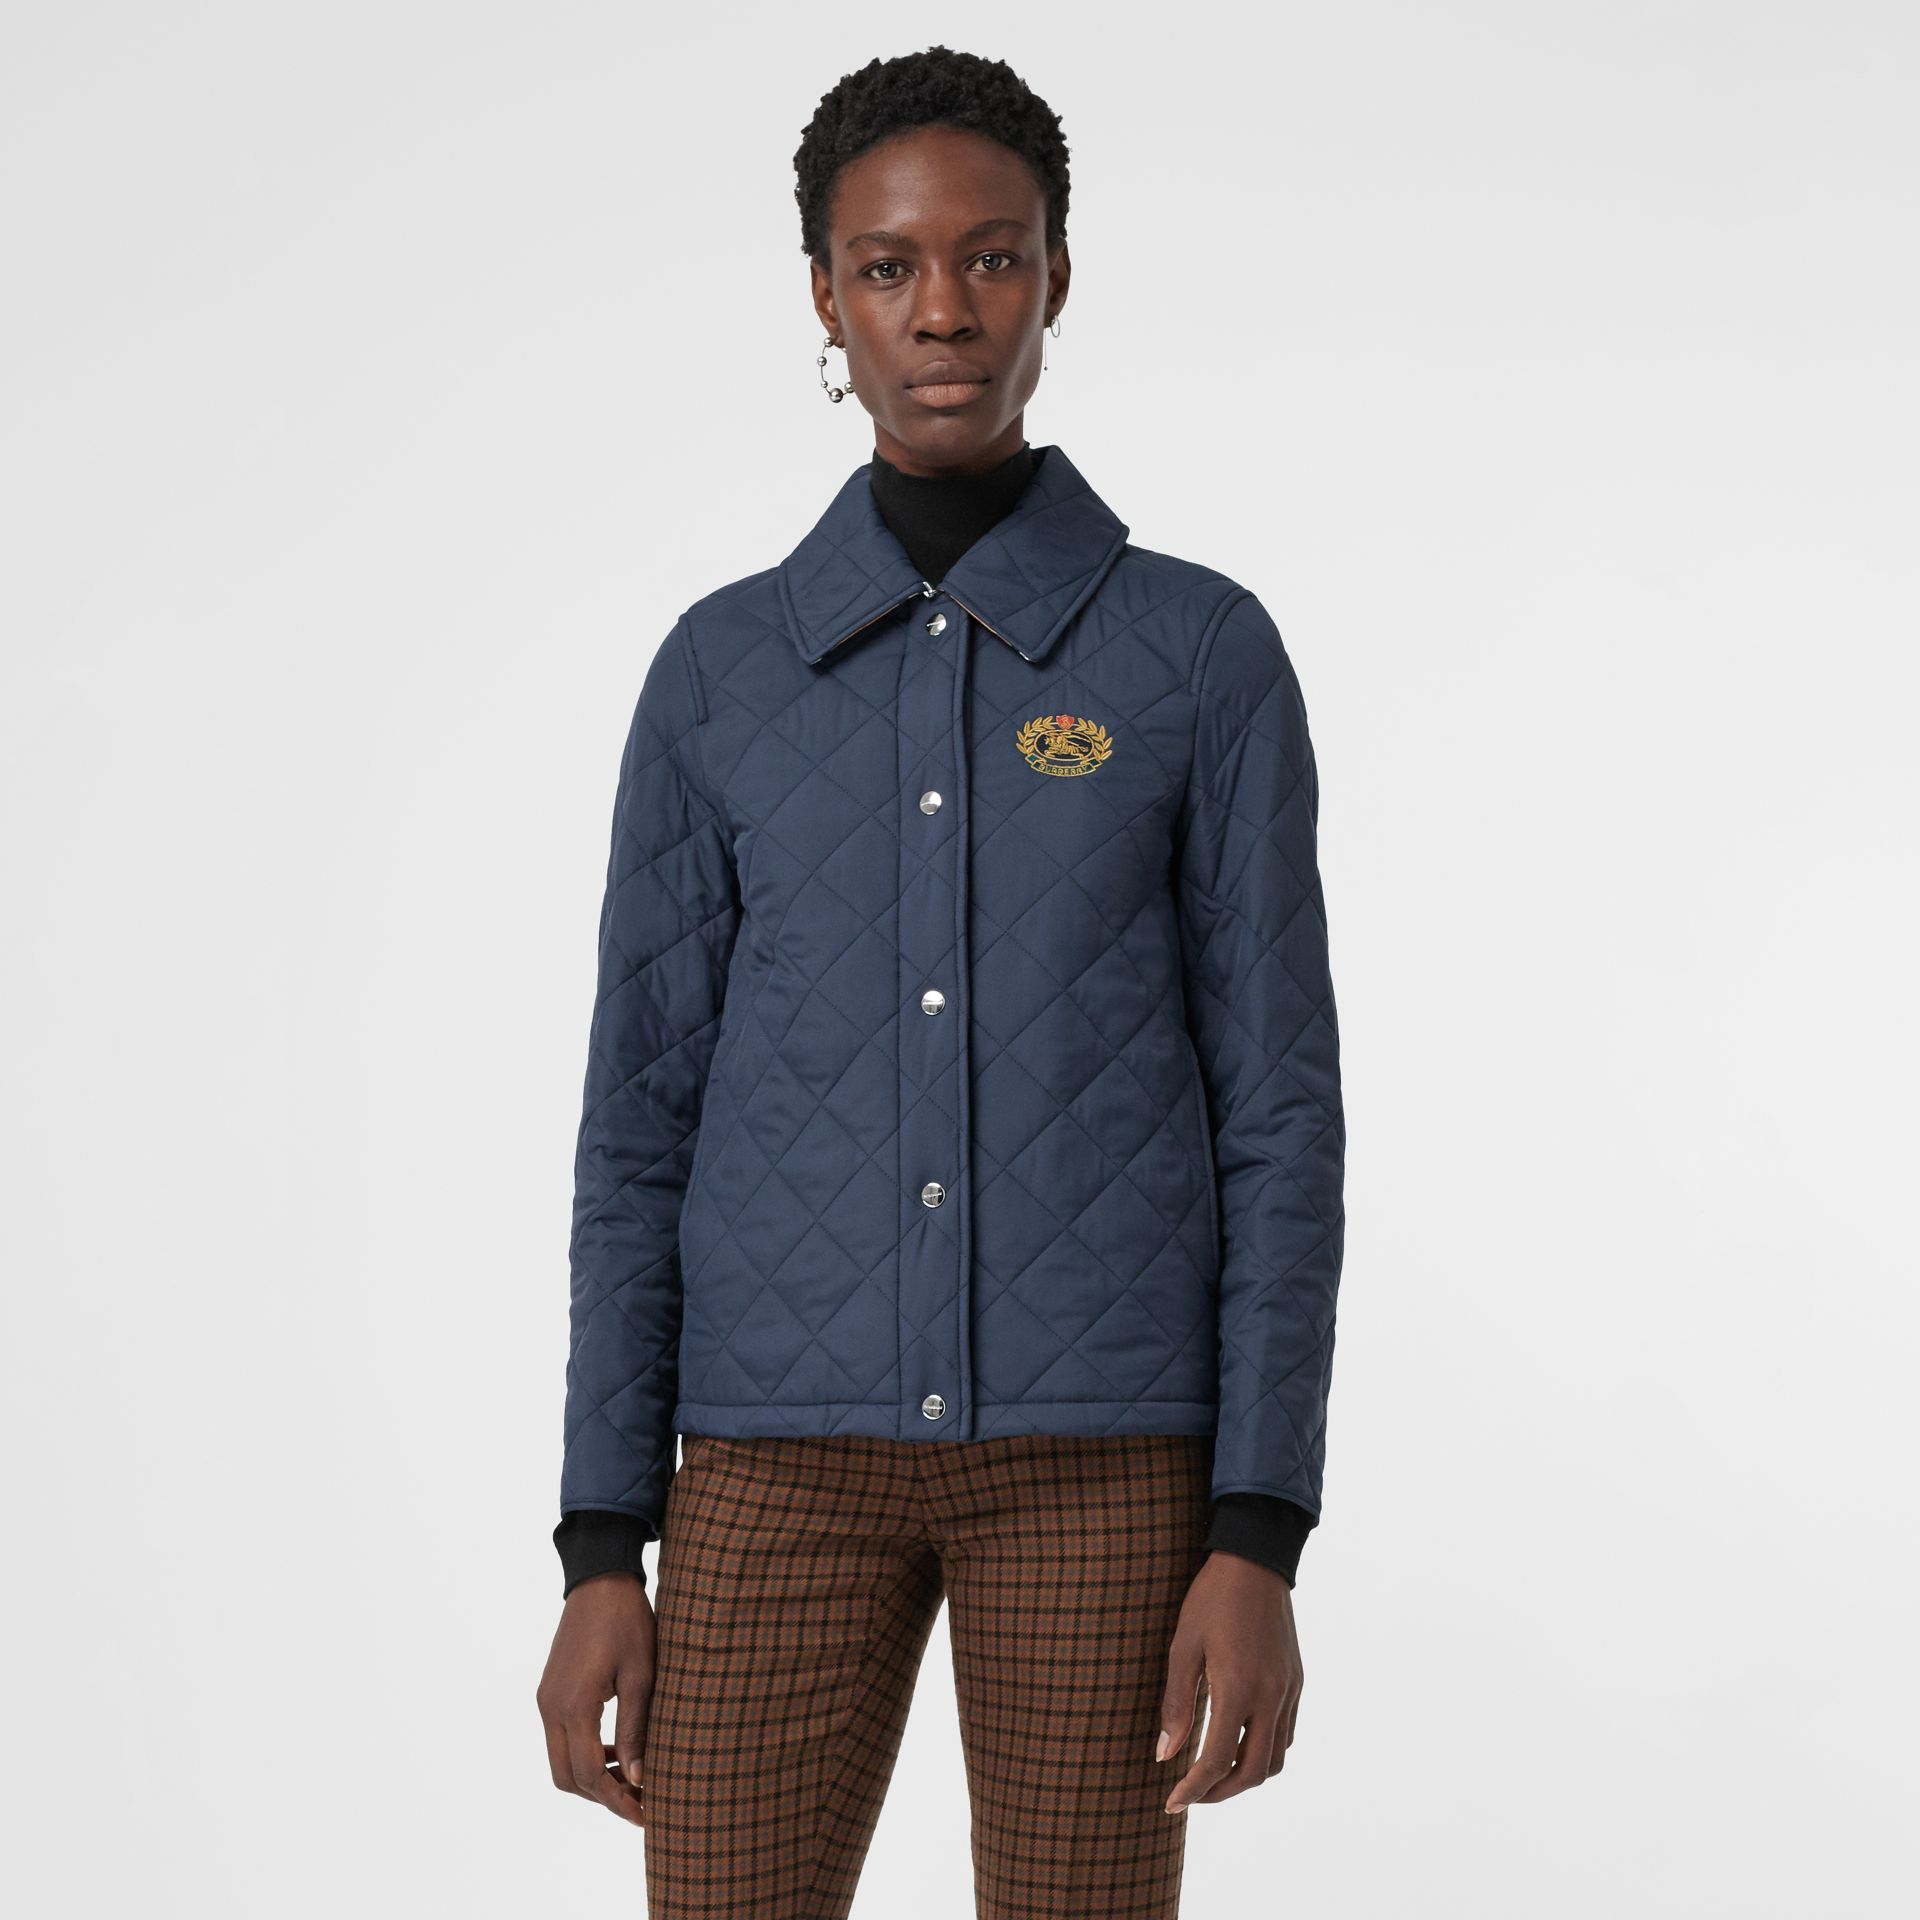 Embroidered Crest Diamond Quilted Jacket in Navy - Women | Burberry Singapore - gallery image 5